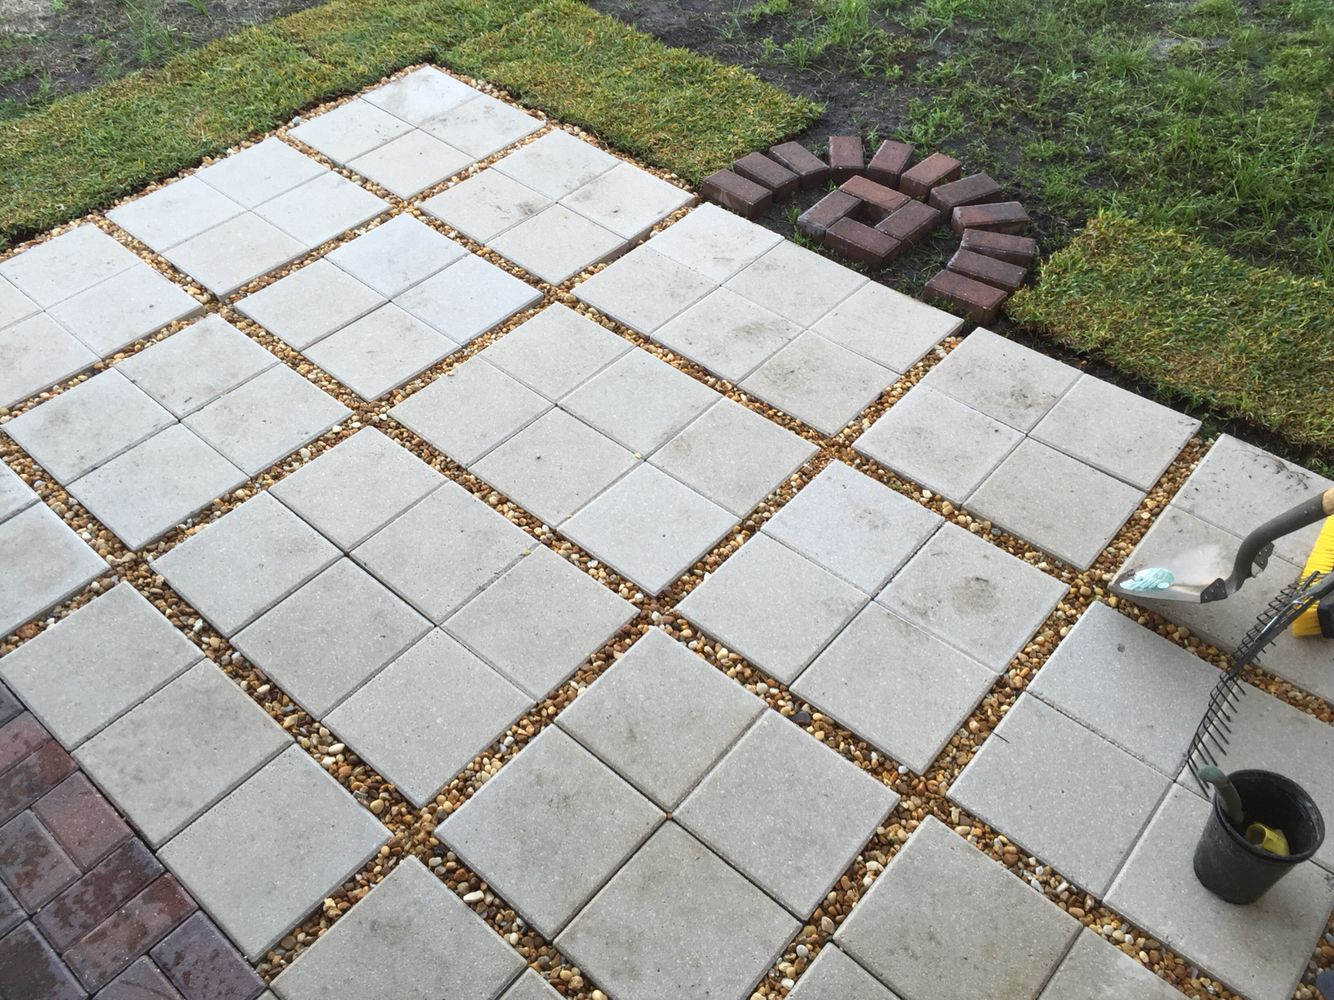 Almost Done Paver Patio Diy 12x12 Pavers With Gravel Between